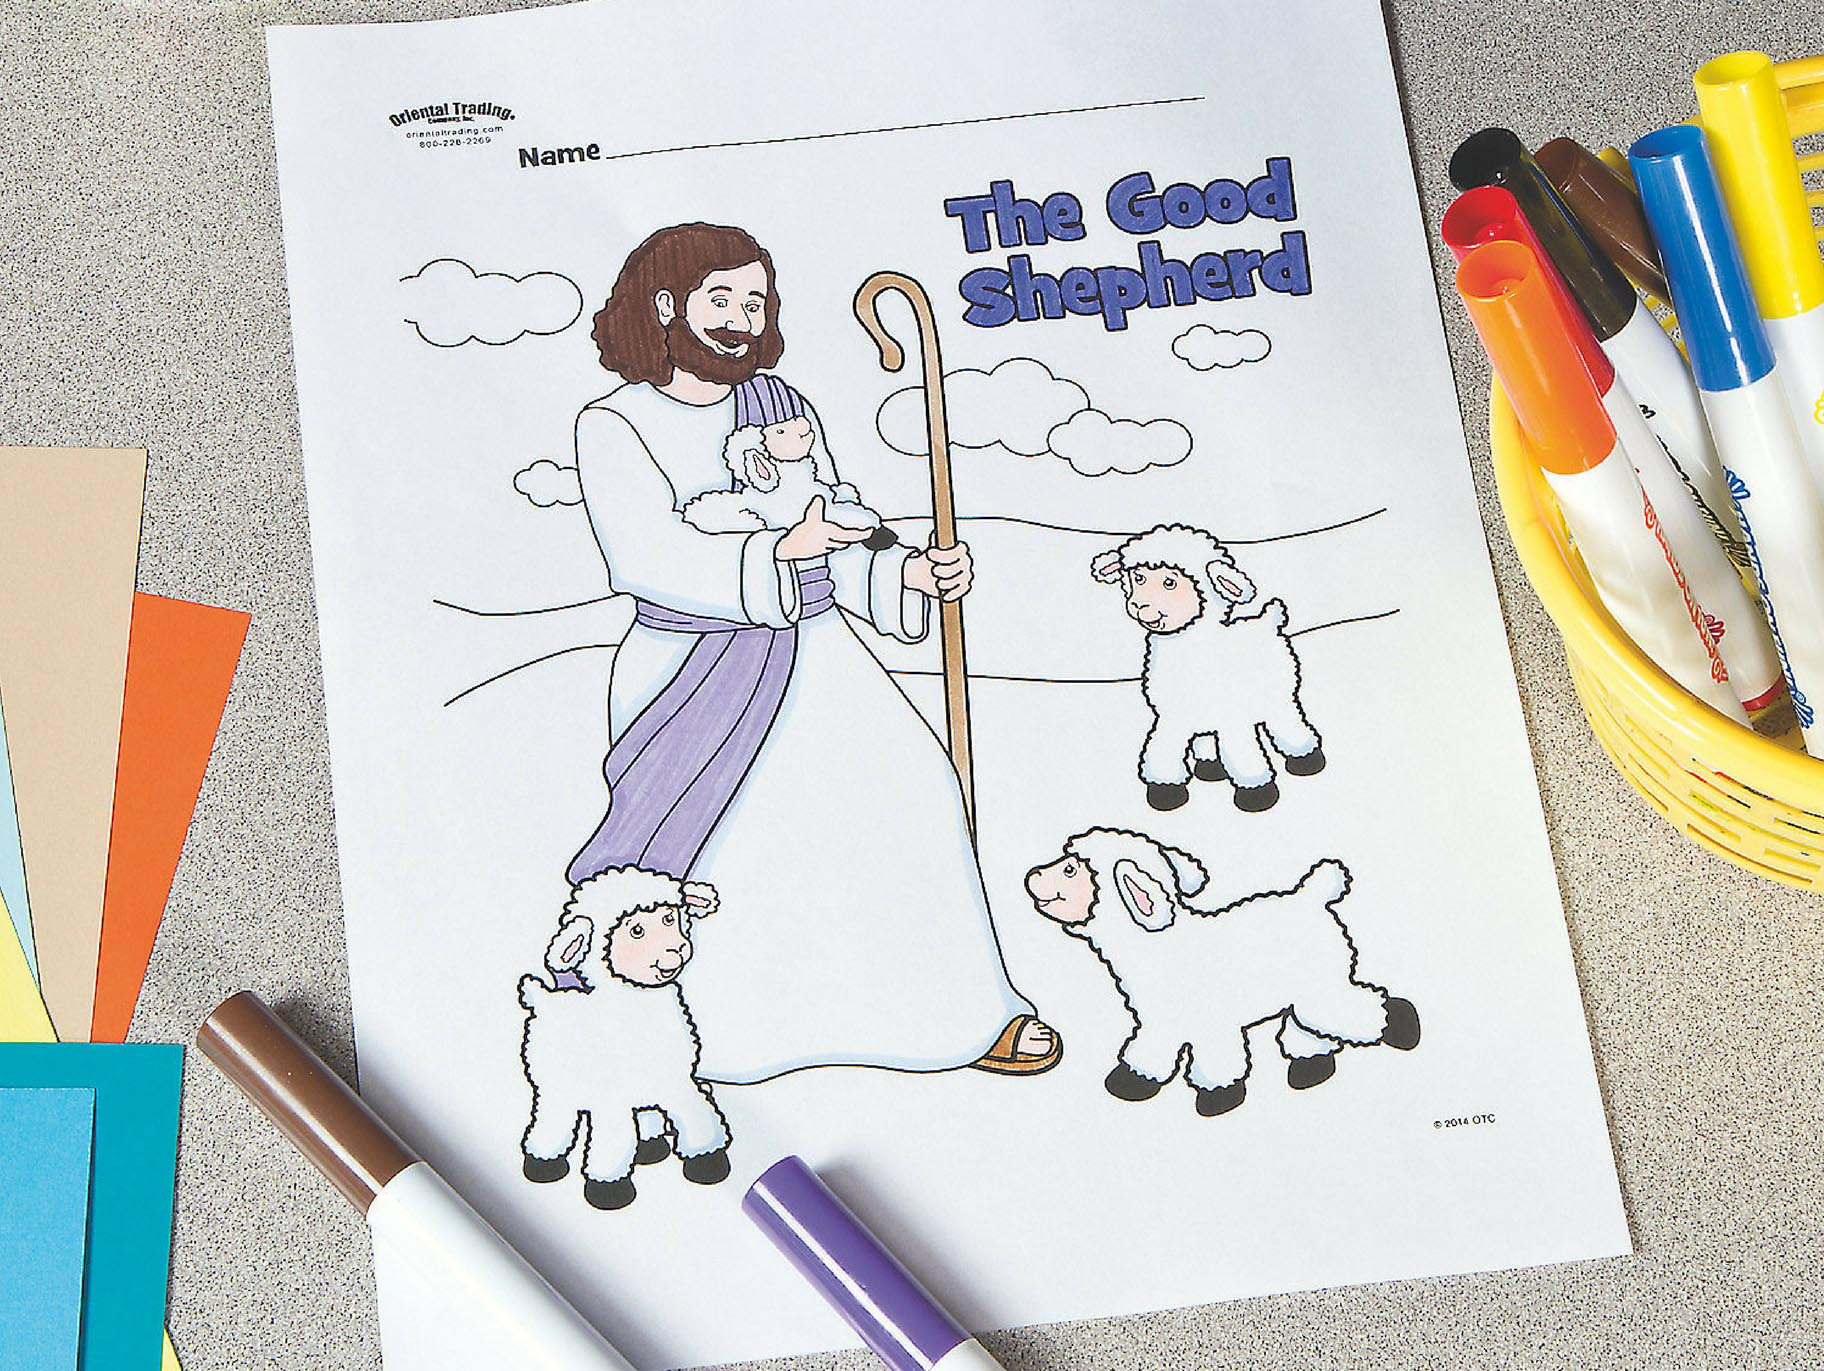 Good Shepherd Coloring Pages Free - Coloring Home | 1371x1824